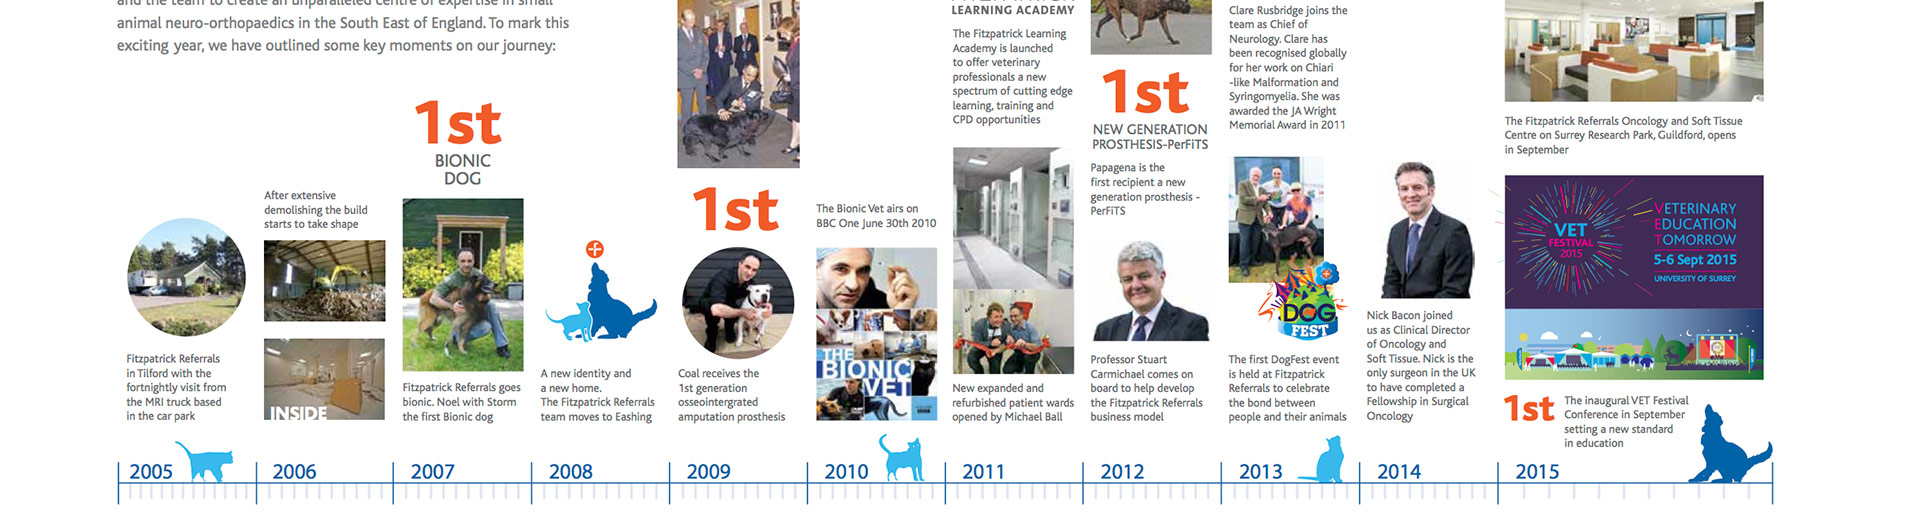 Fitzpatrick Referrals Orthopaedics & Neurology and Oncology and Soft Tissue Hospital, 10 year timeline